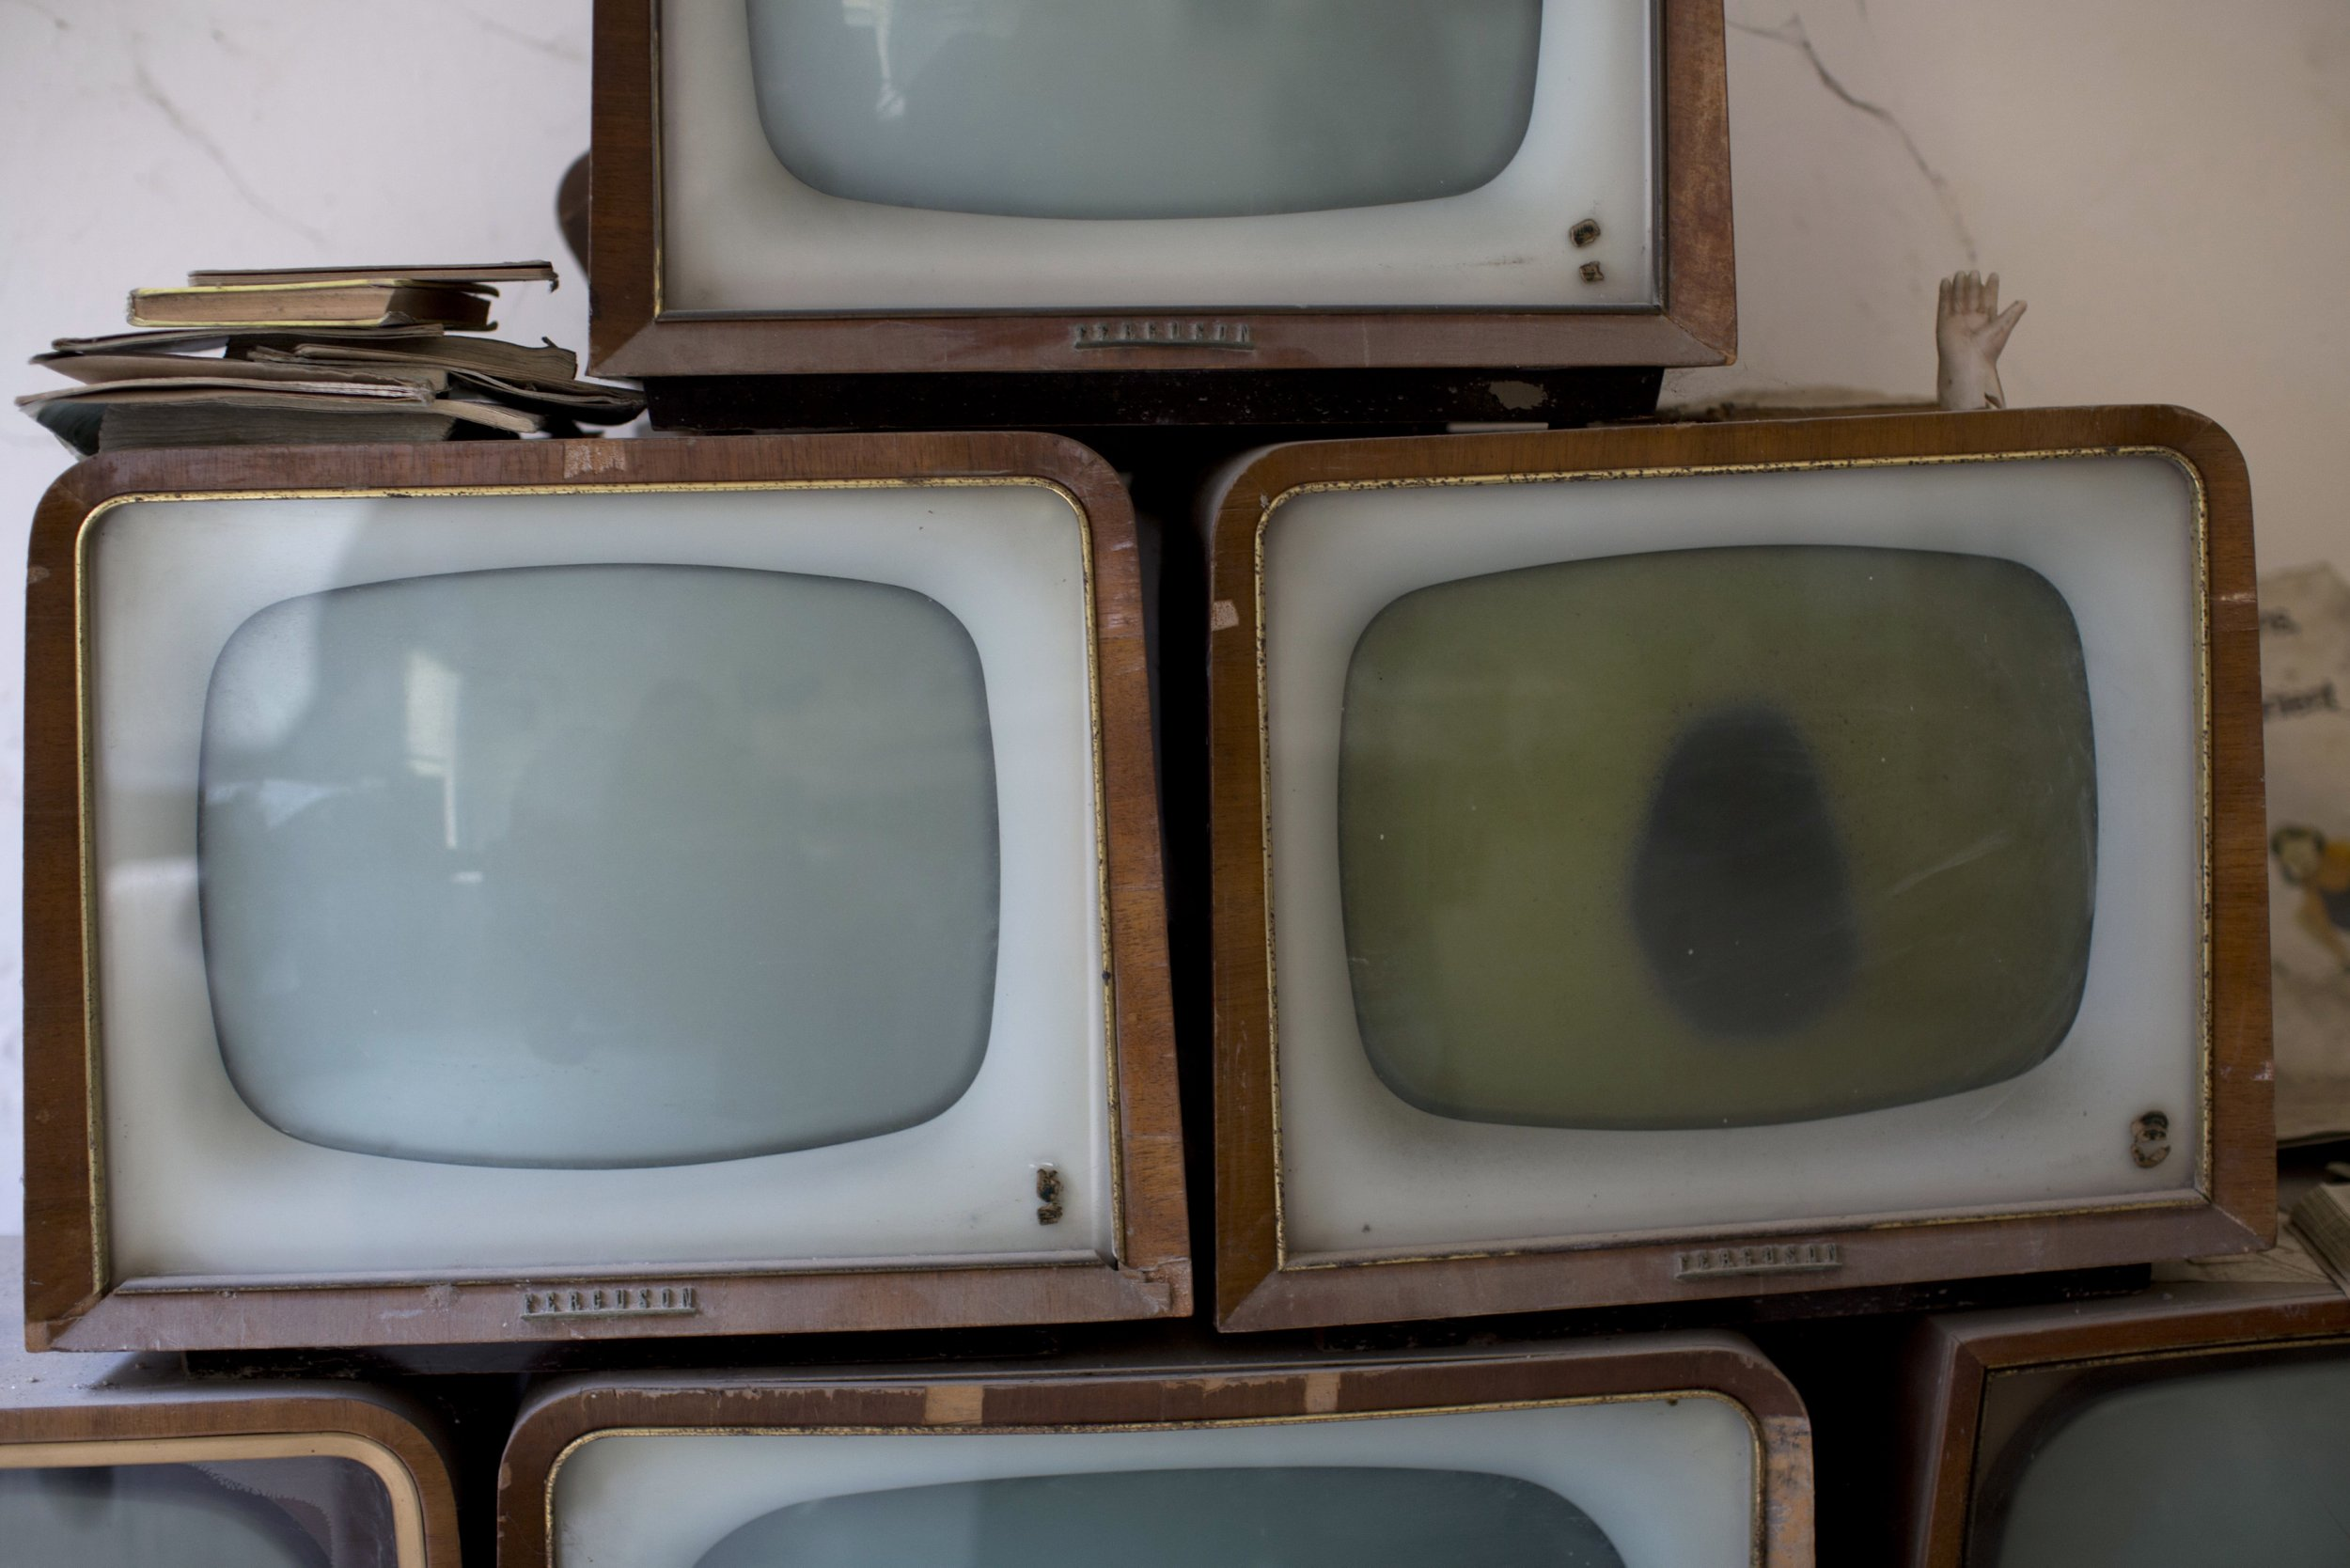 Old televisions.